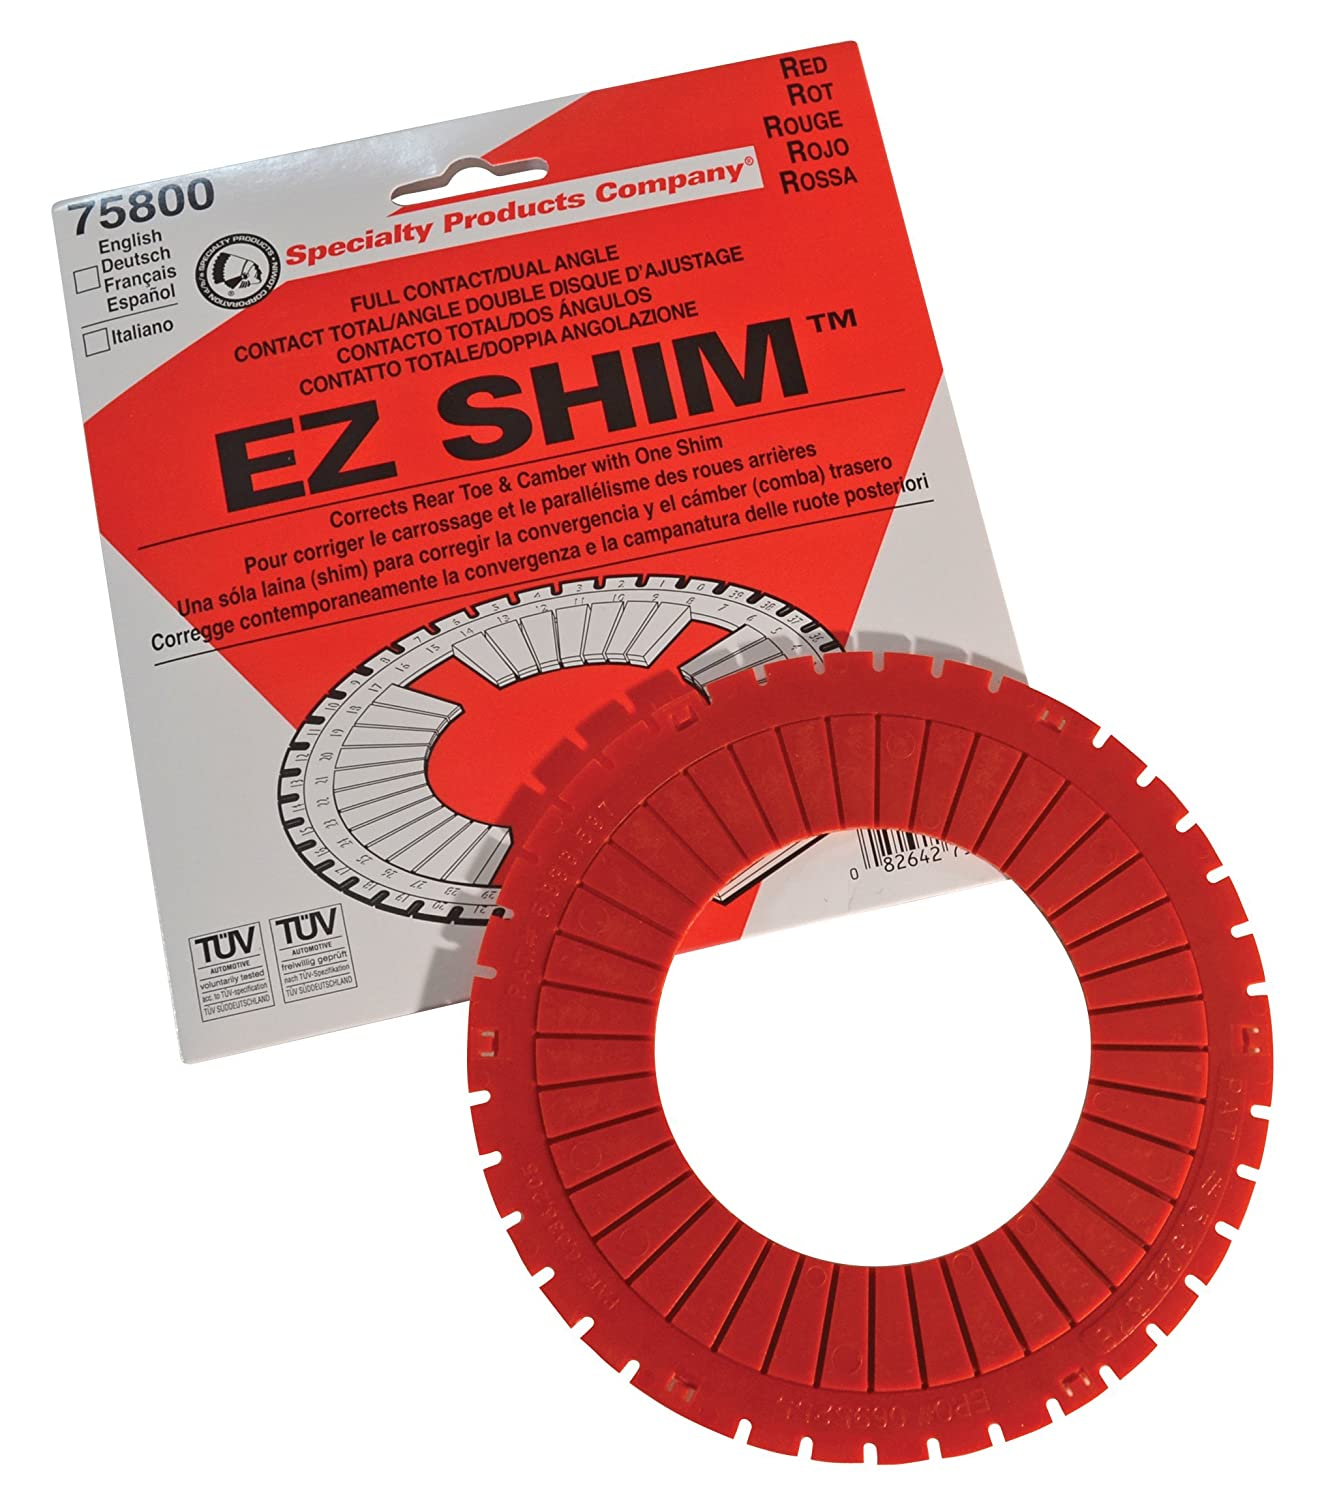 Specialty Products Company 75800 Red Dual Angle Shim SPT75800